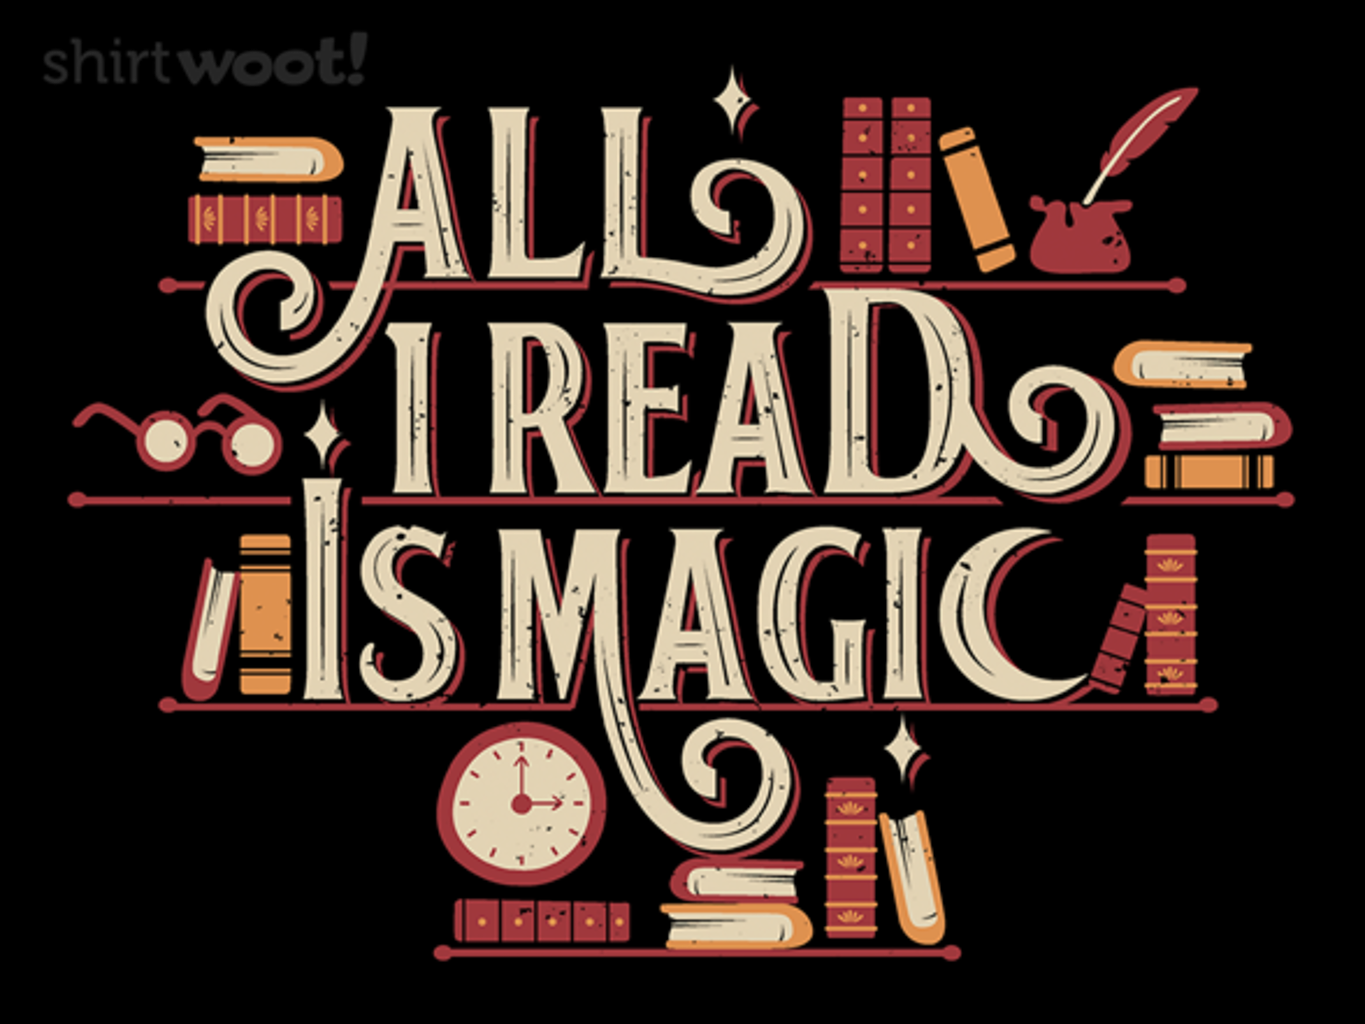 Woot!: All I read is Magic